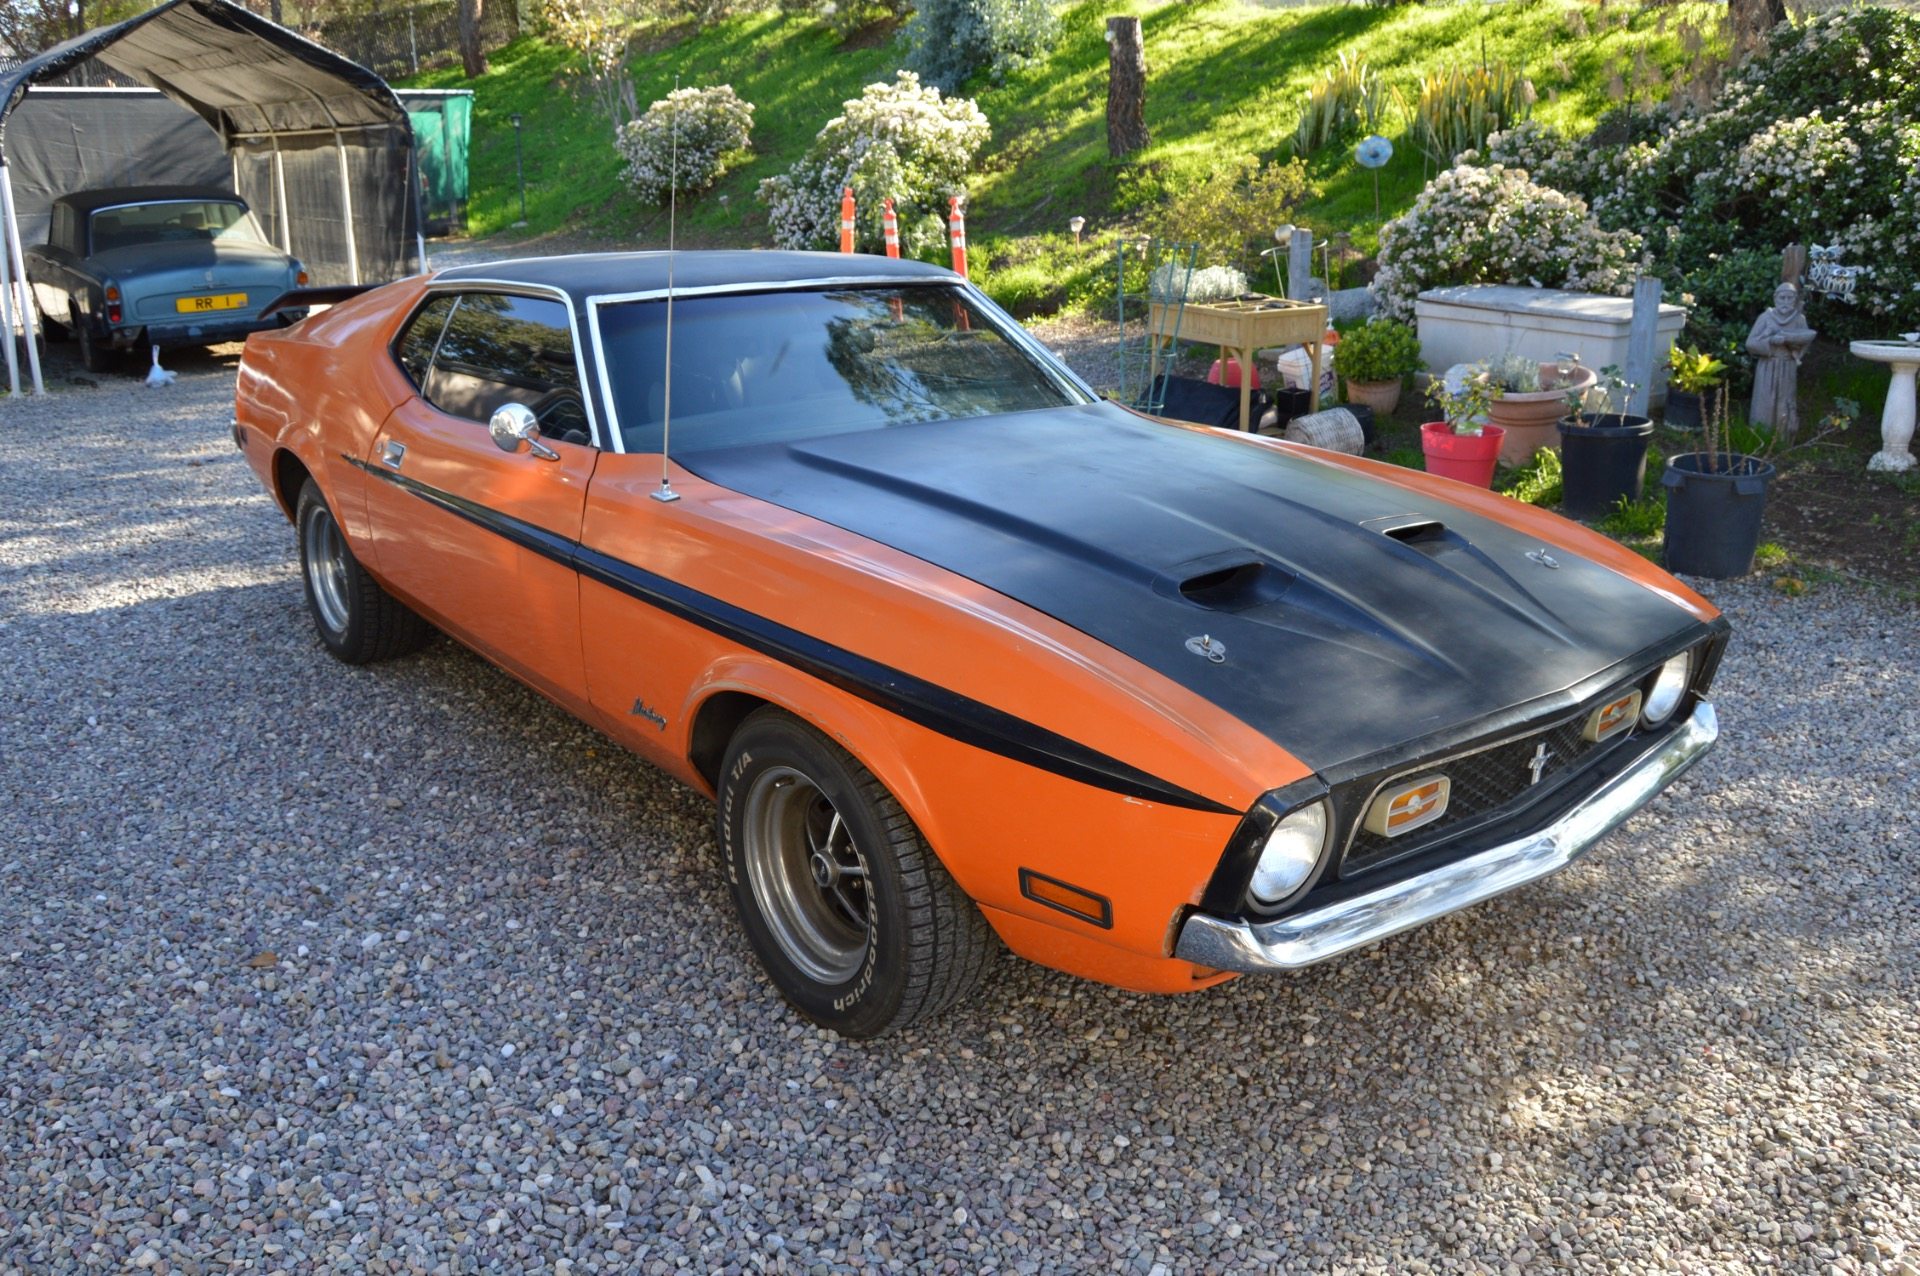 Used-1971-Ford-Mustang-Fastback